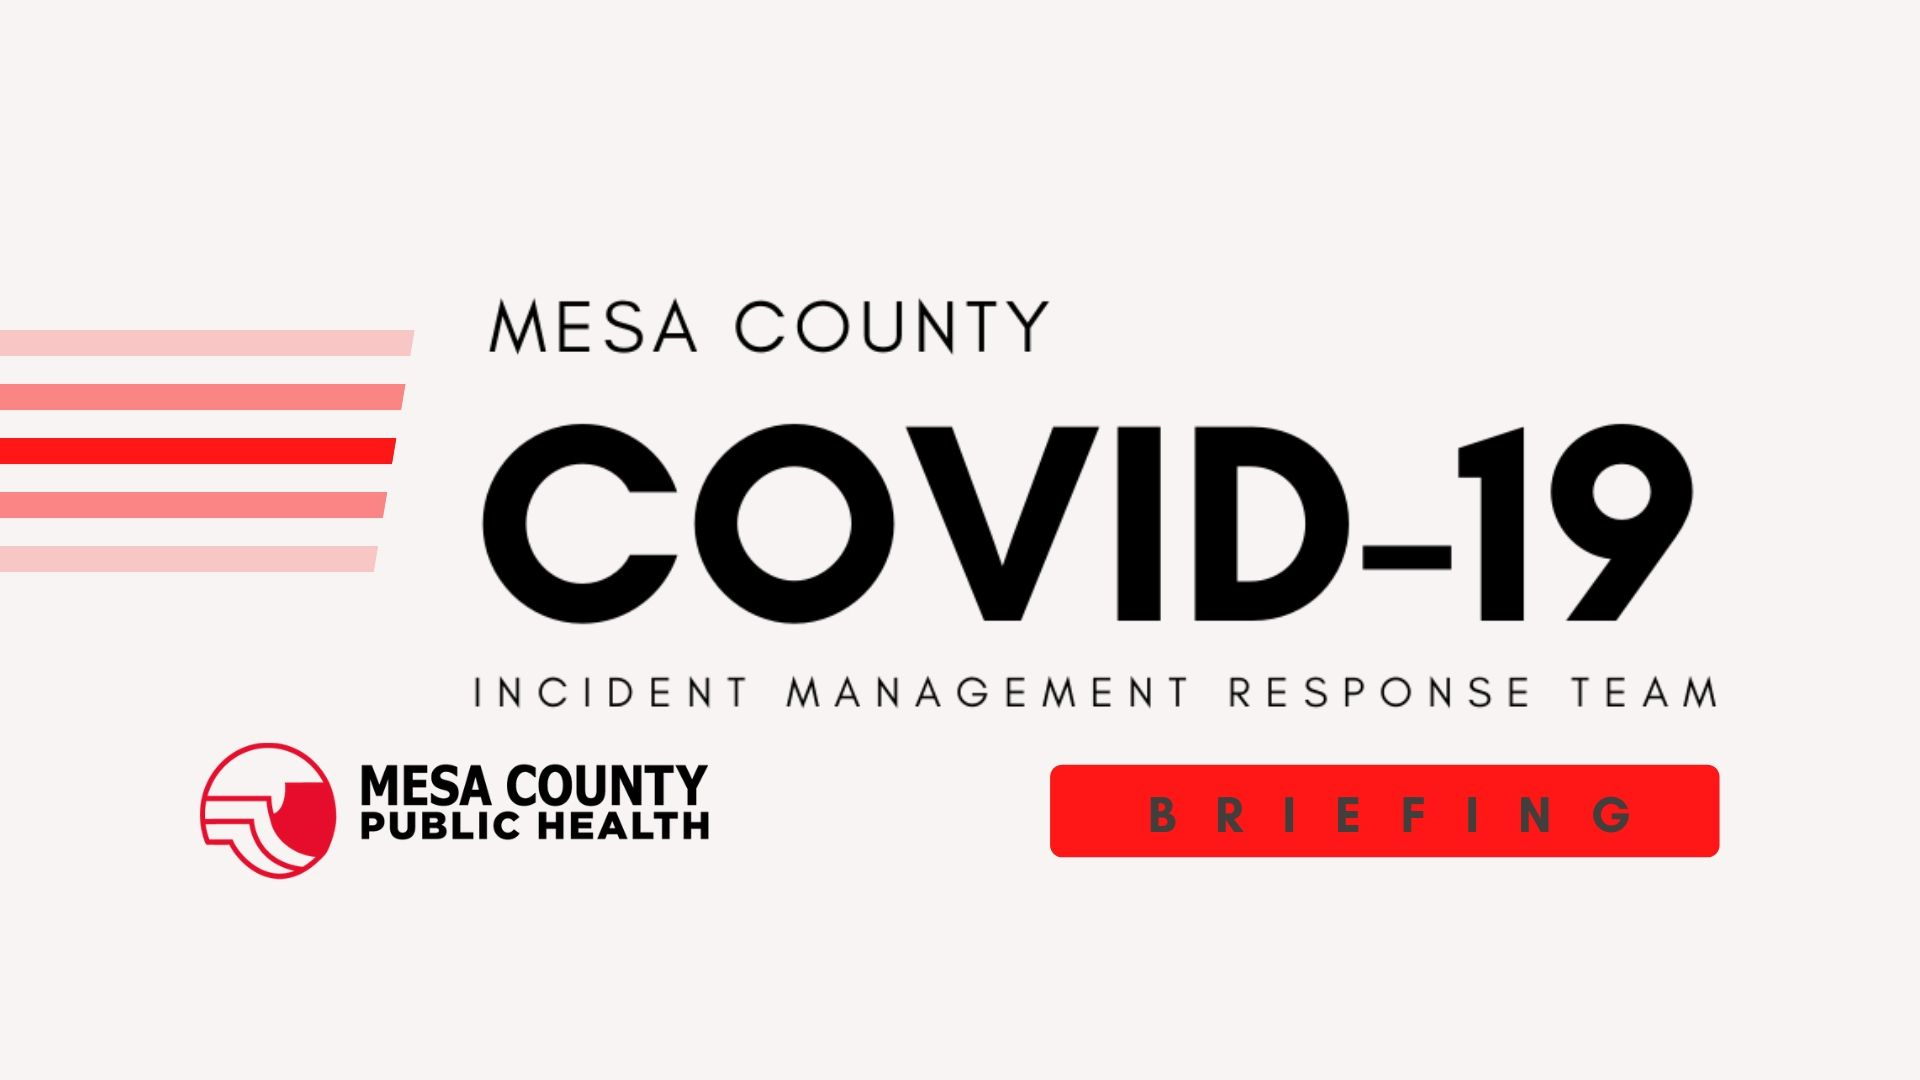 MCPH to Give Regular Briefings on COVID-19